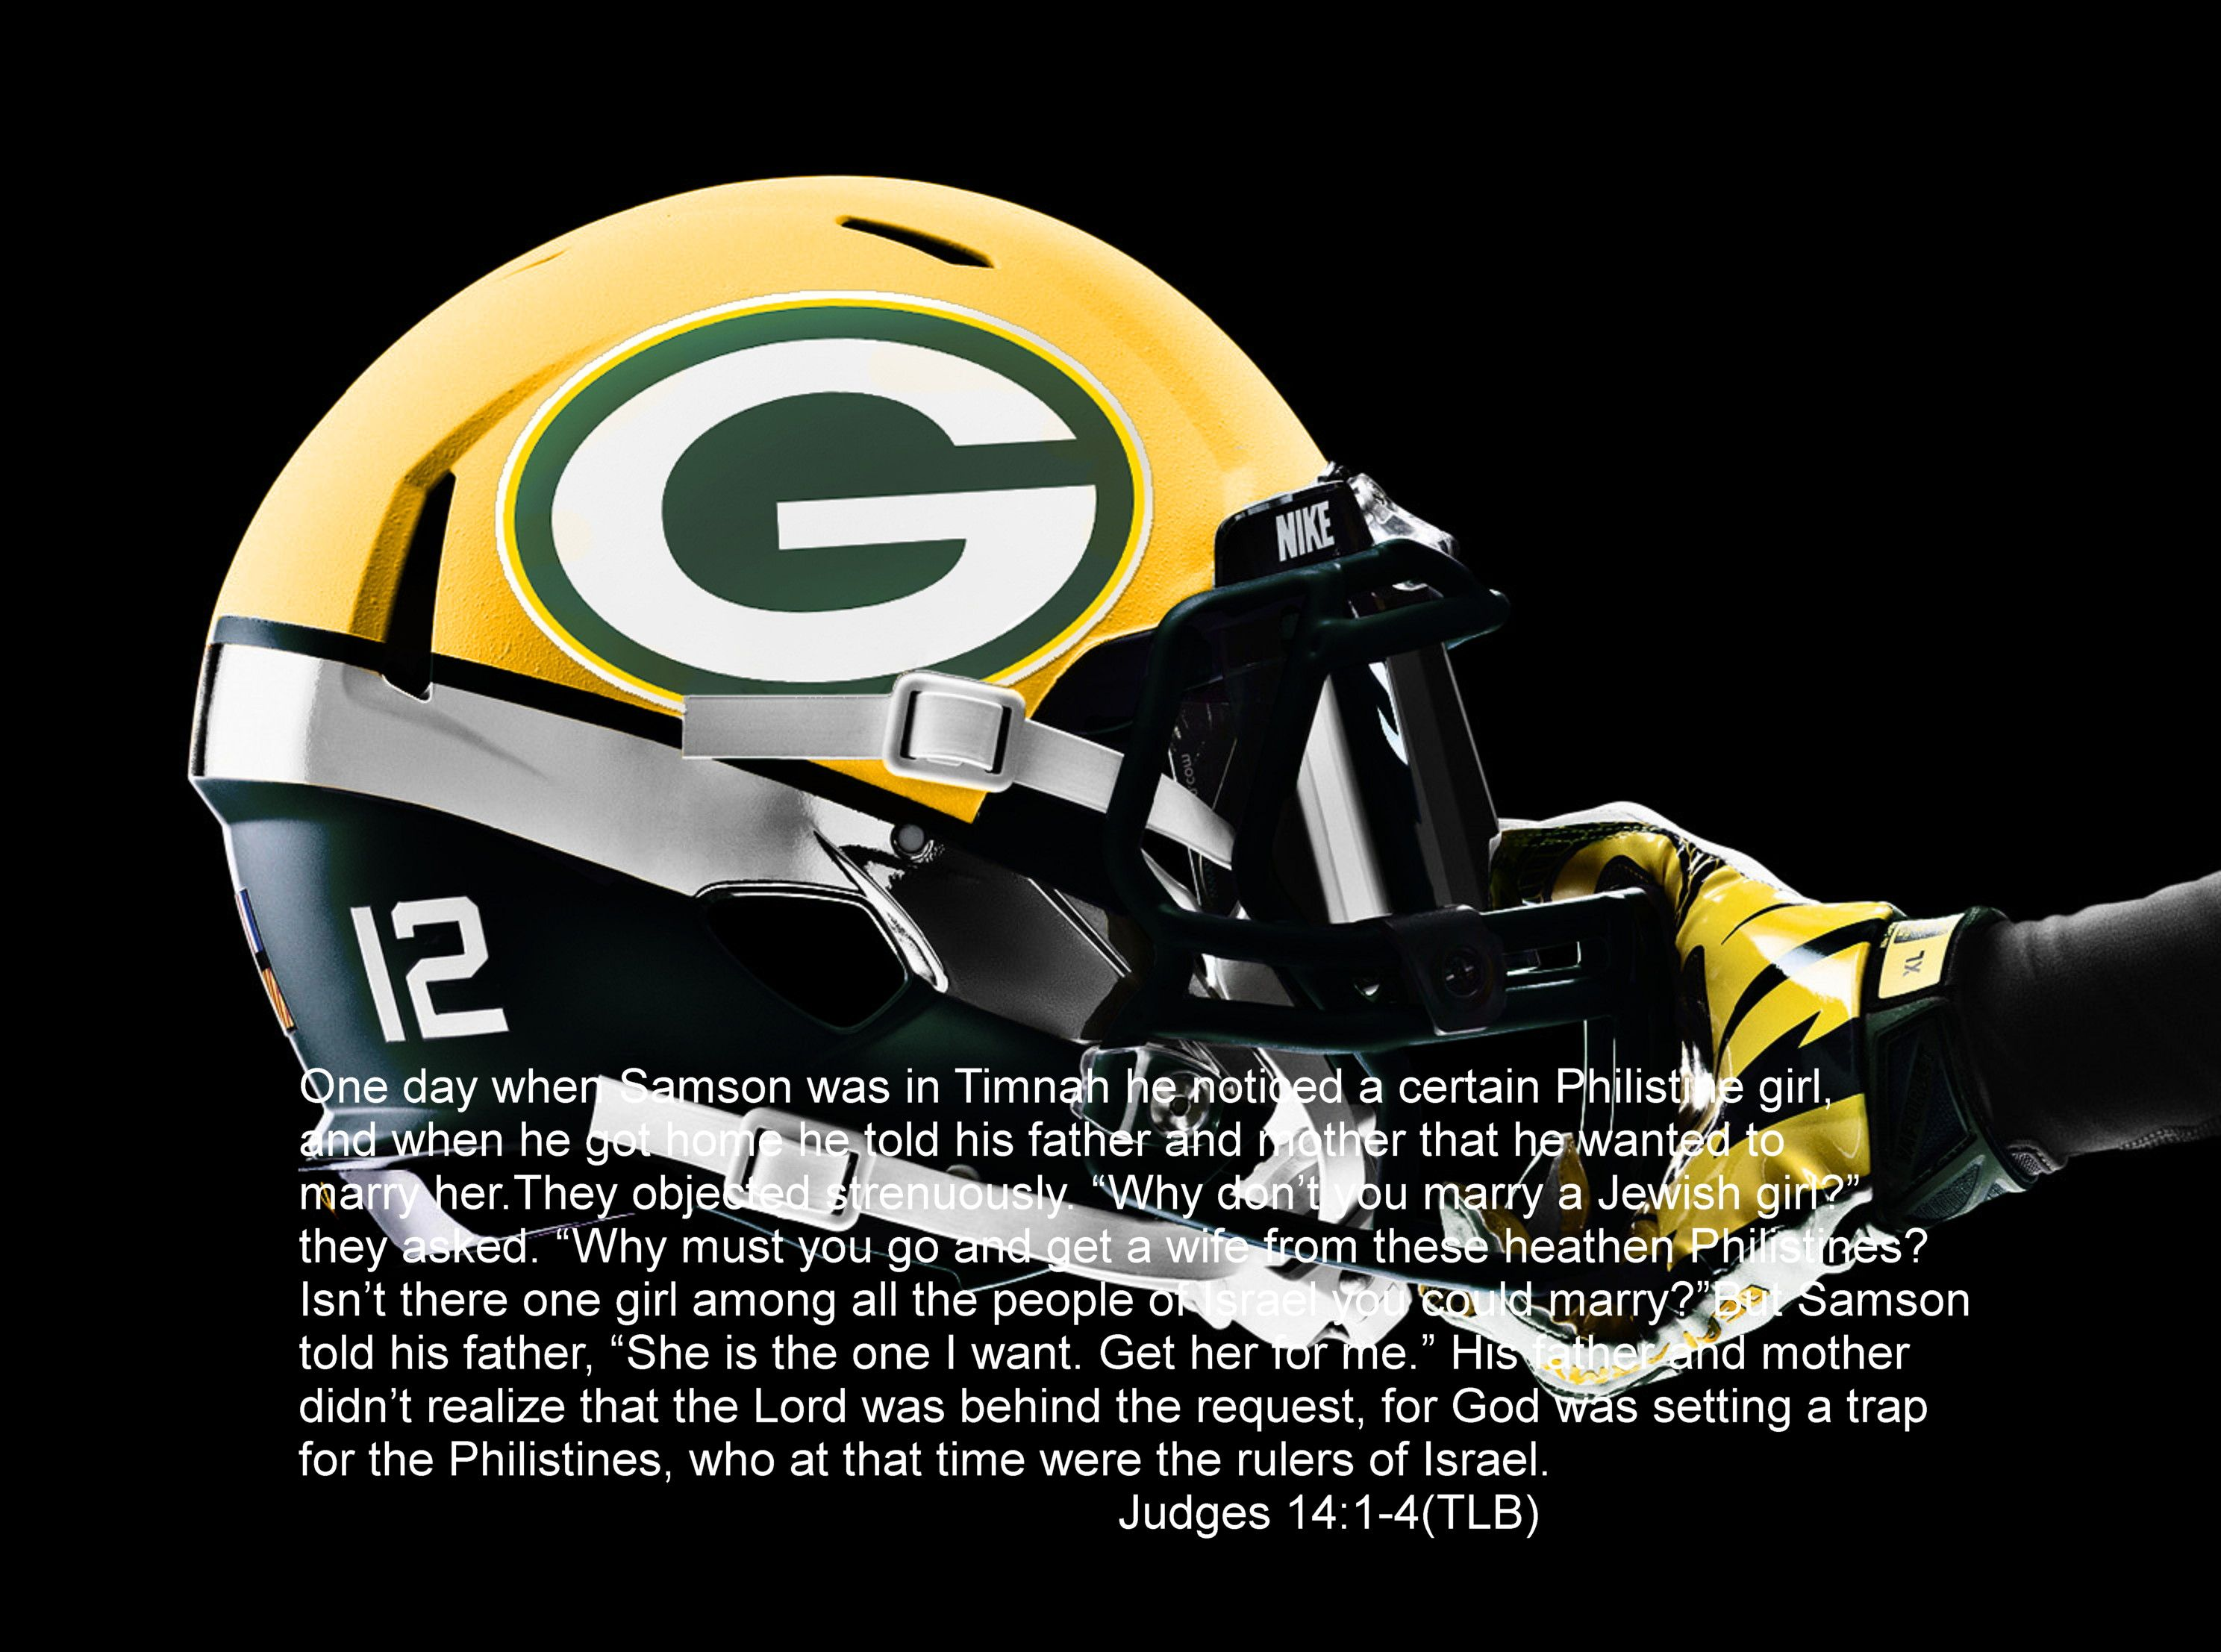 Http Terrygerjitsbibleverse Blogspot Com Spreadthenameofjesus Green Bay Packers Helmet Green Bay Packers Football Packers Football